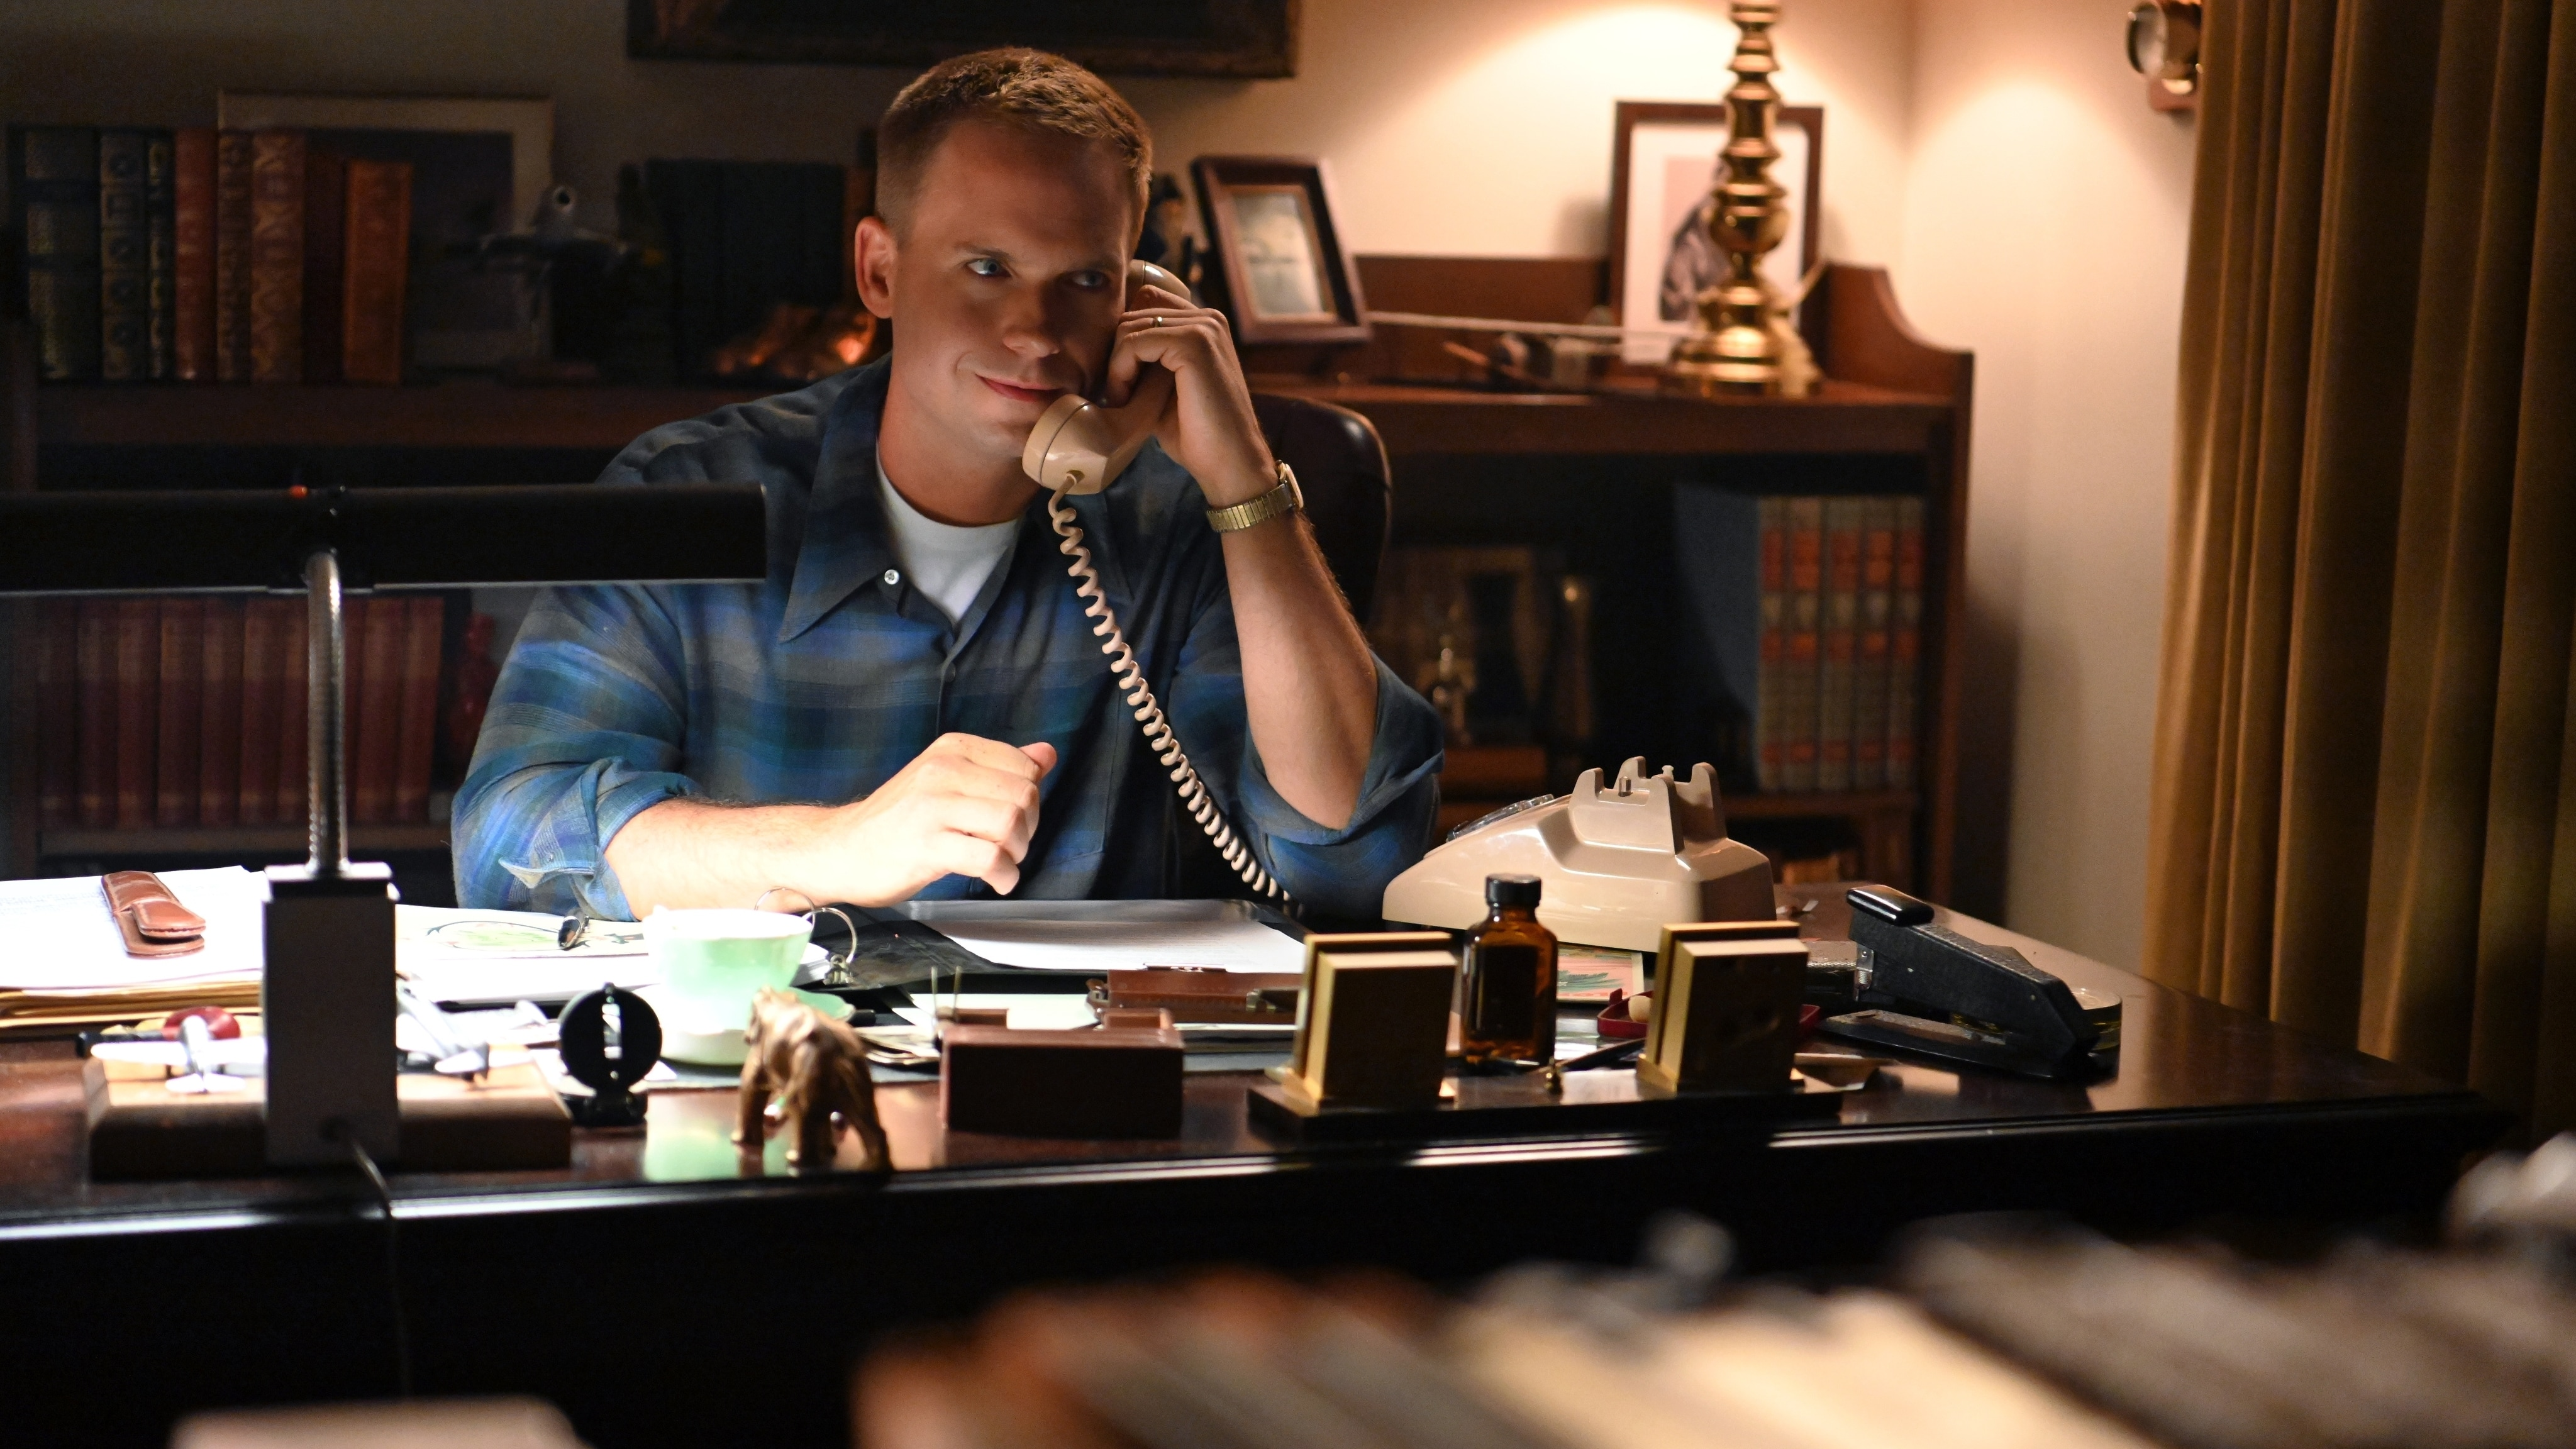 John Glenn, played by Patrick J. Adams, speaks to Bobby Kennedy on the telephone about the upcoming presidential election and the space program in National Geographic's THE RIGHT STUFF streaming on Disney+. (National Geographic/Gene Page)